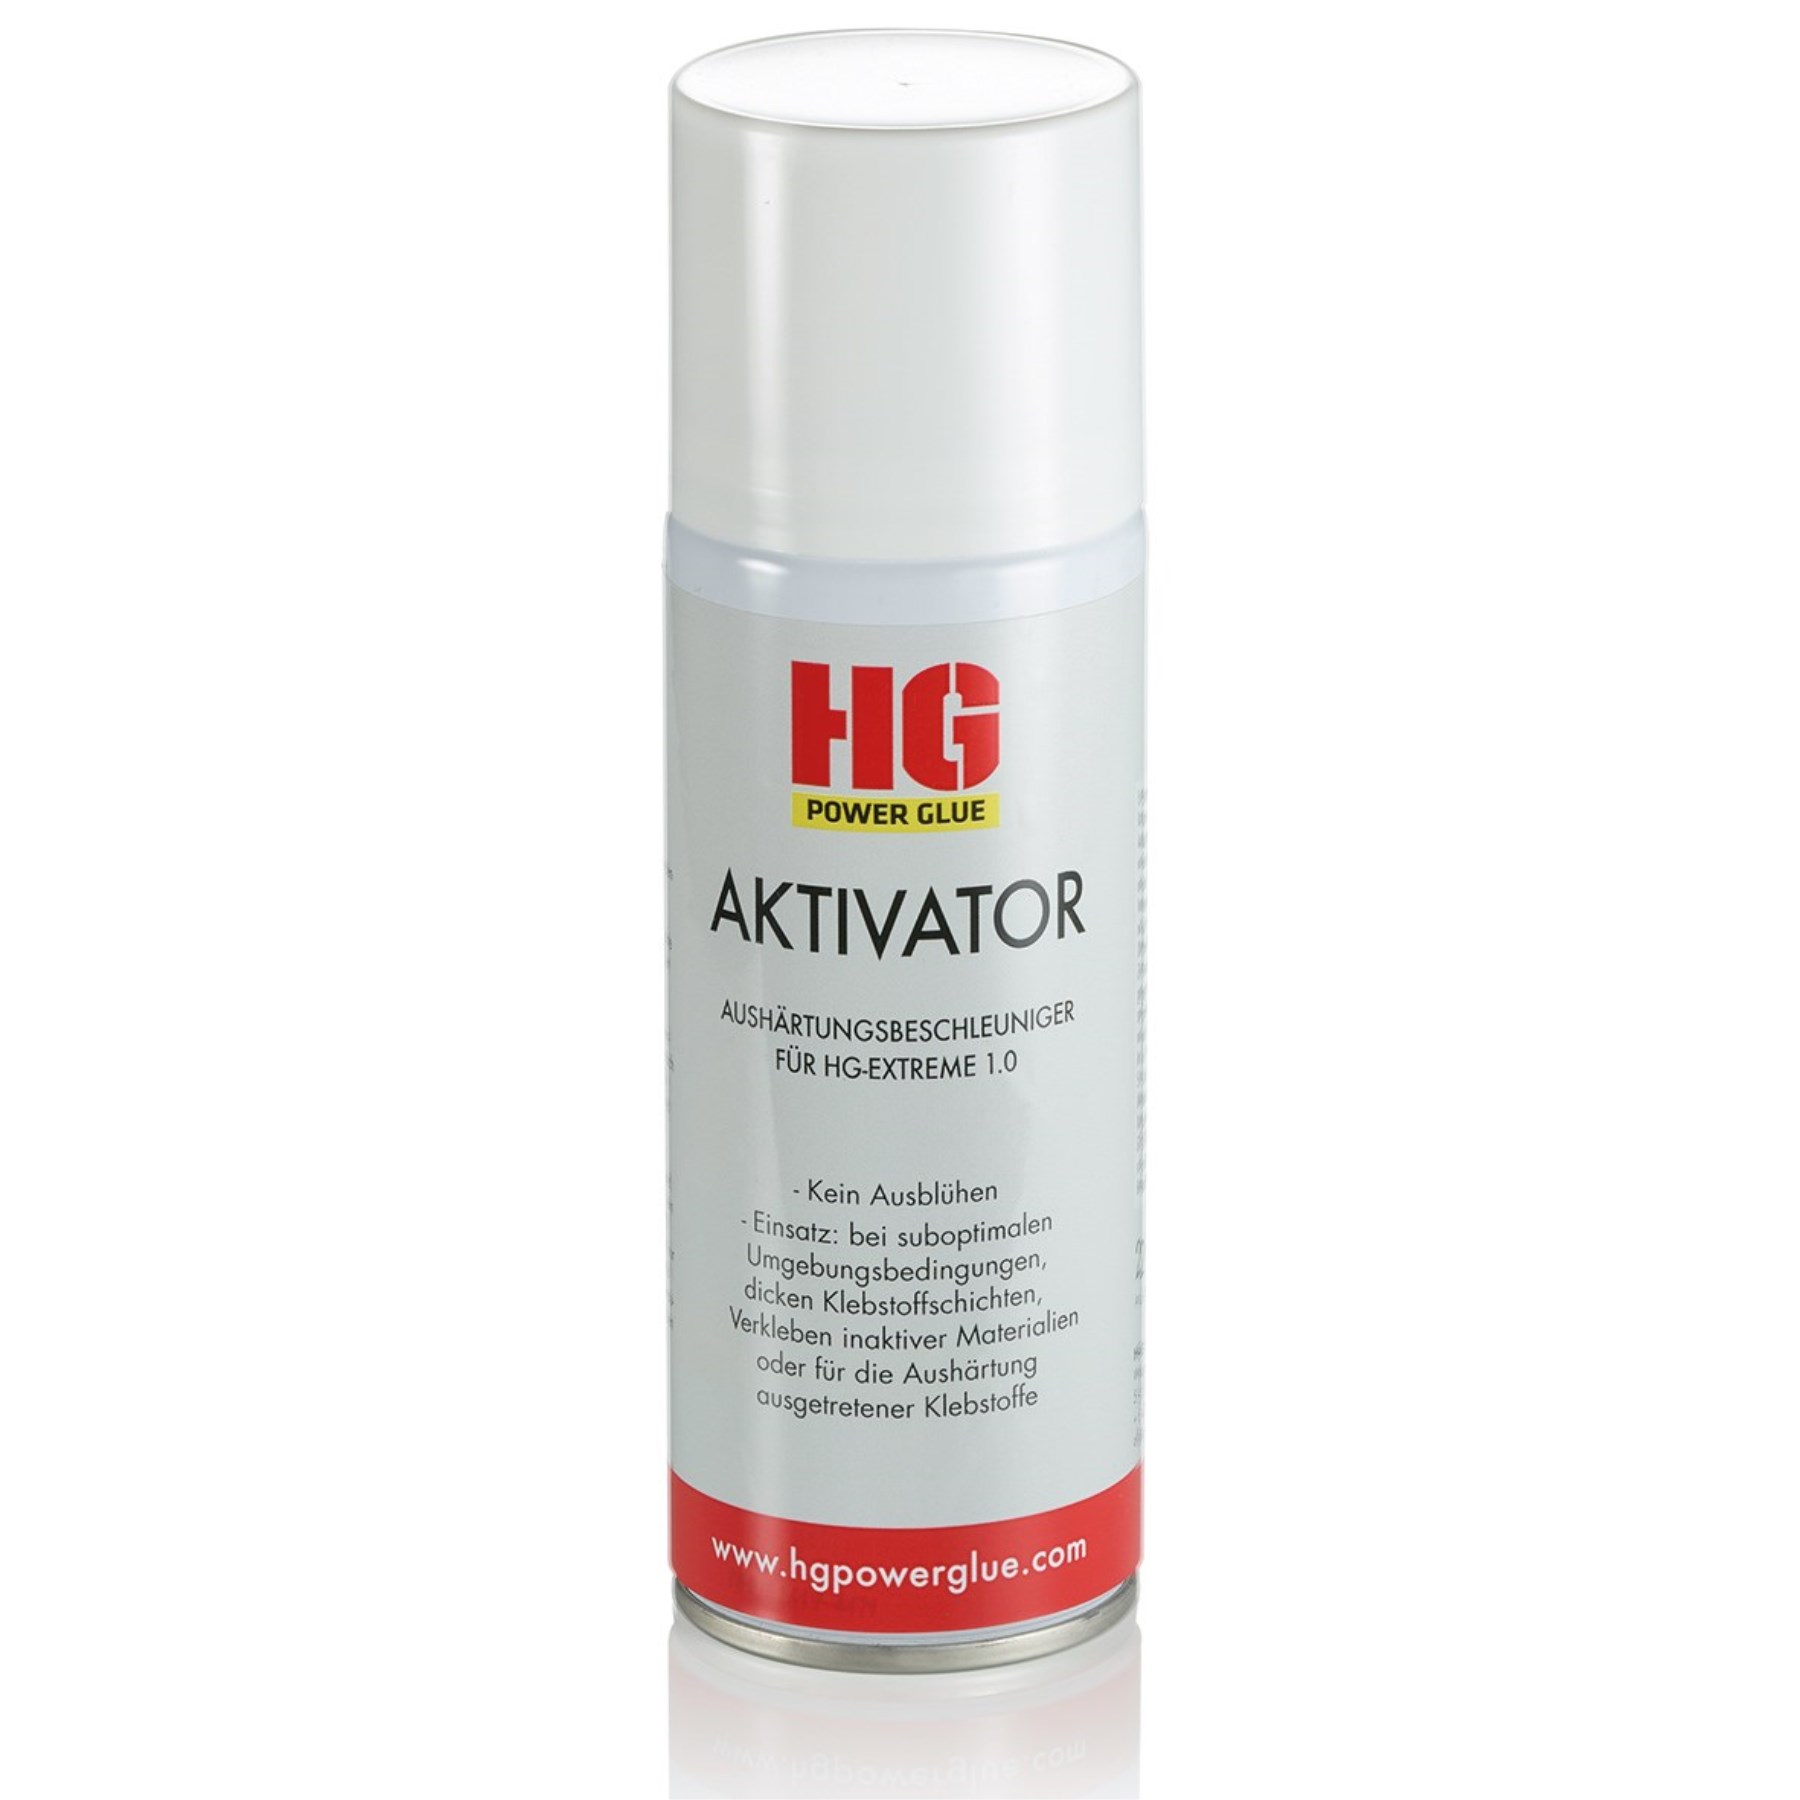 1257538 - HG Aktivator Spray 20ml